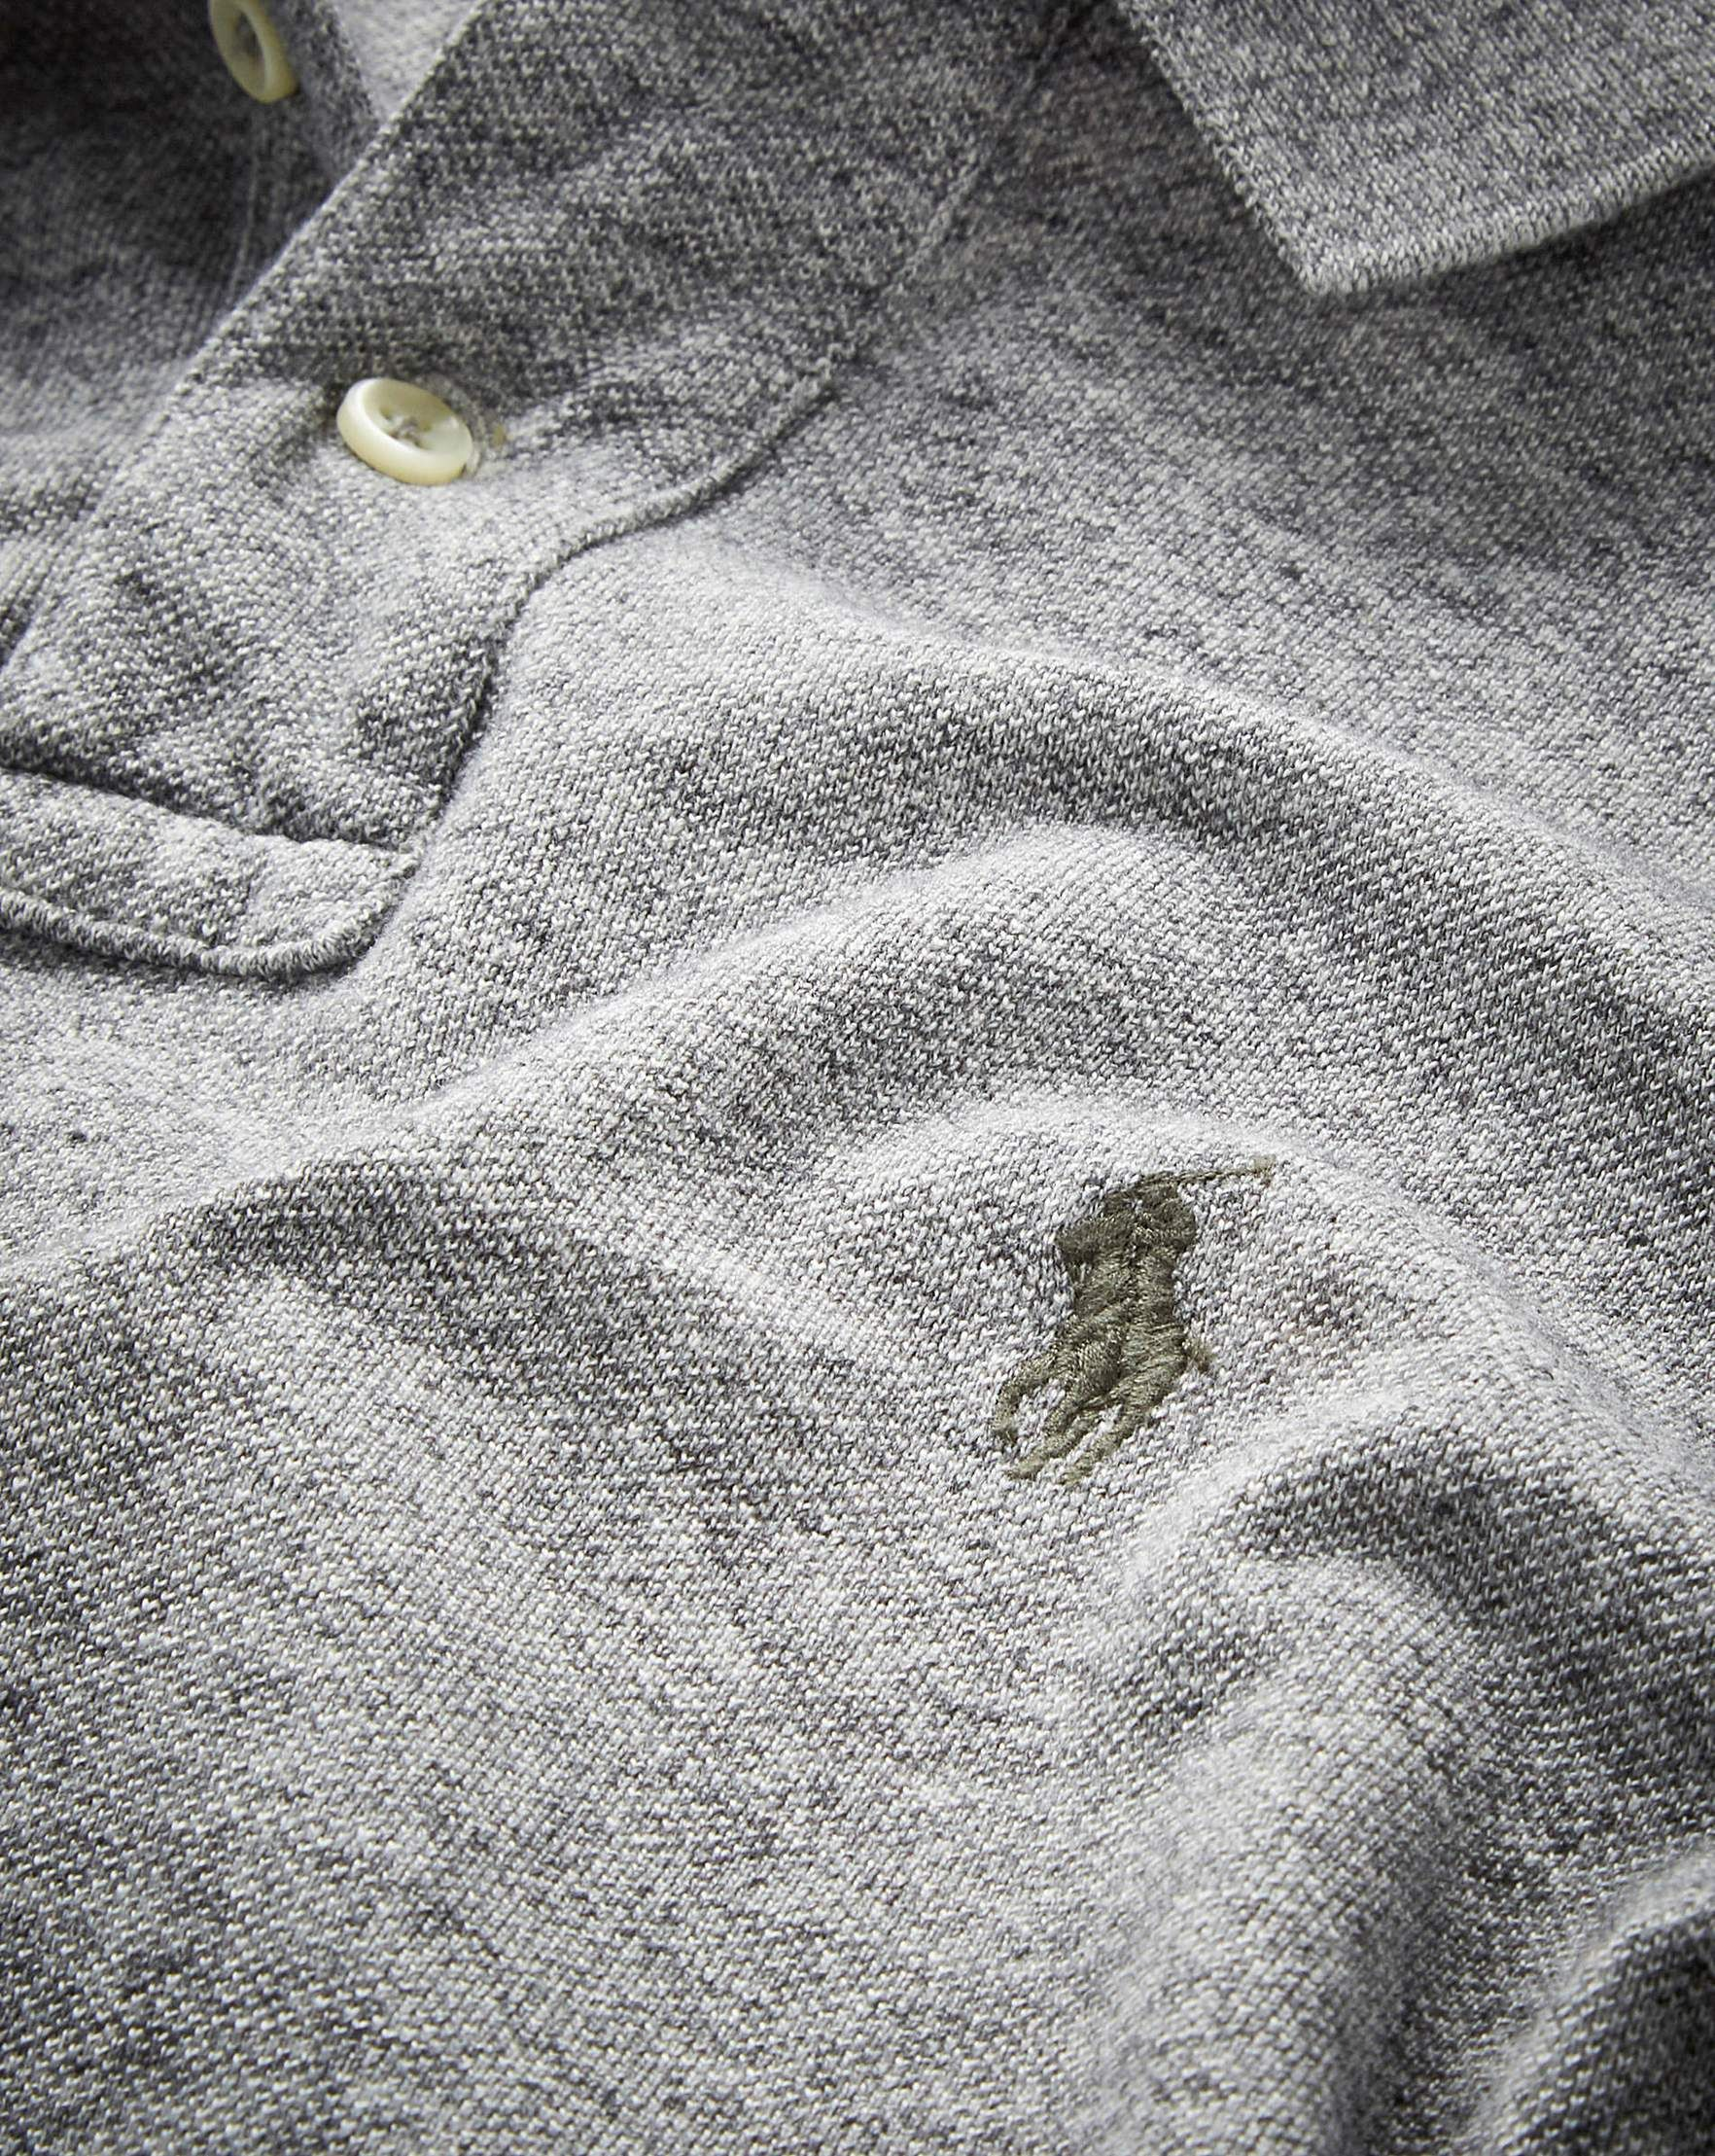 Mesh fabric polo ralph lauren close-up   How to Identify a Genuine Polo by 92e92886dc07f